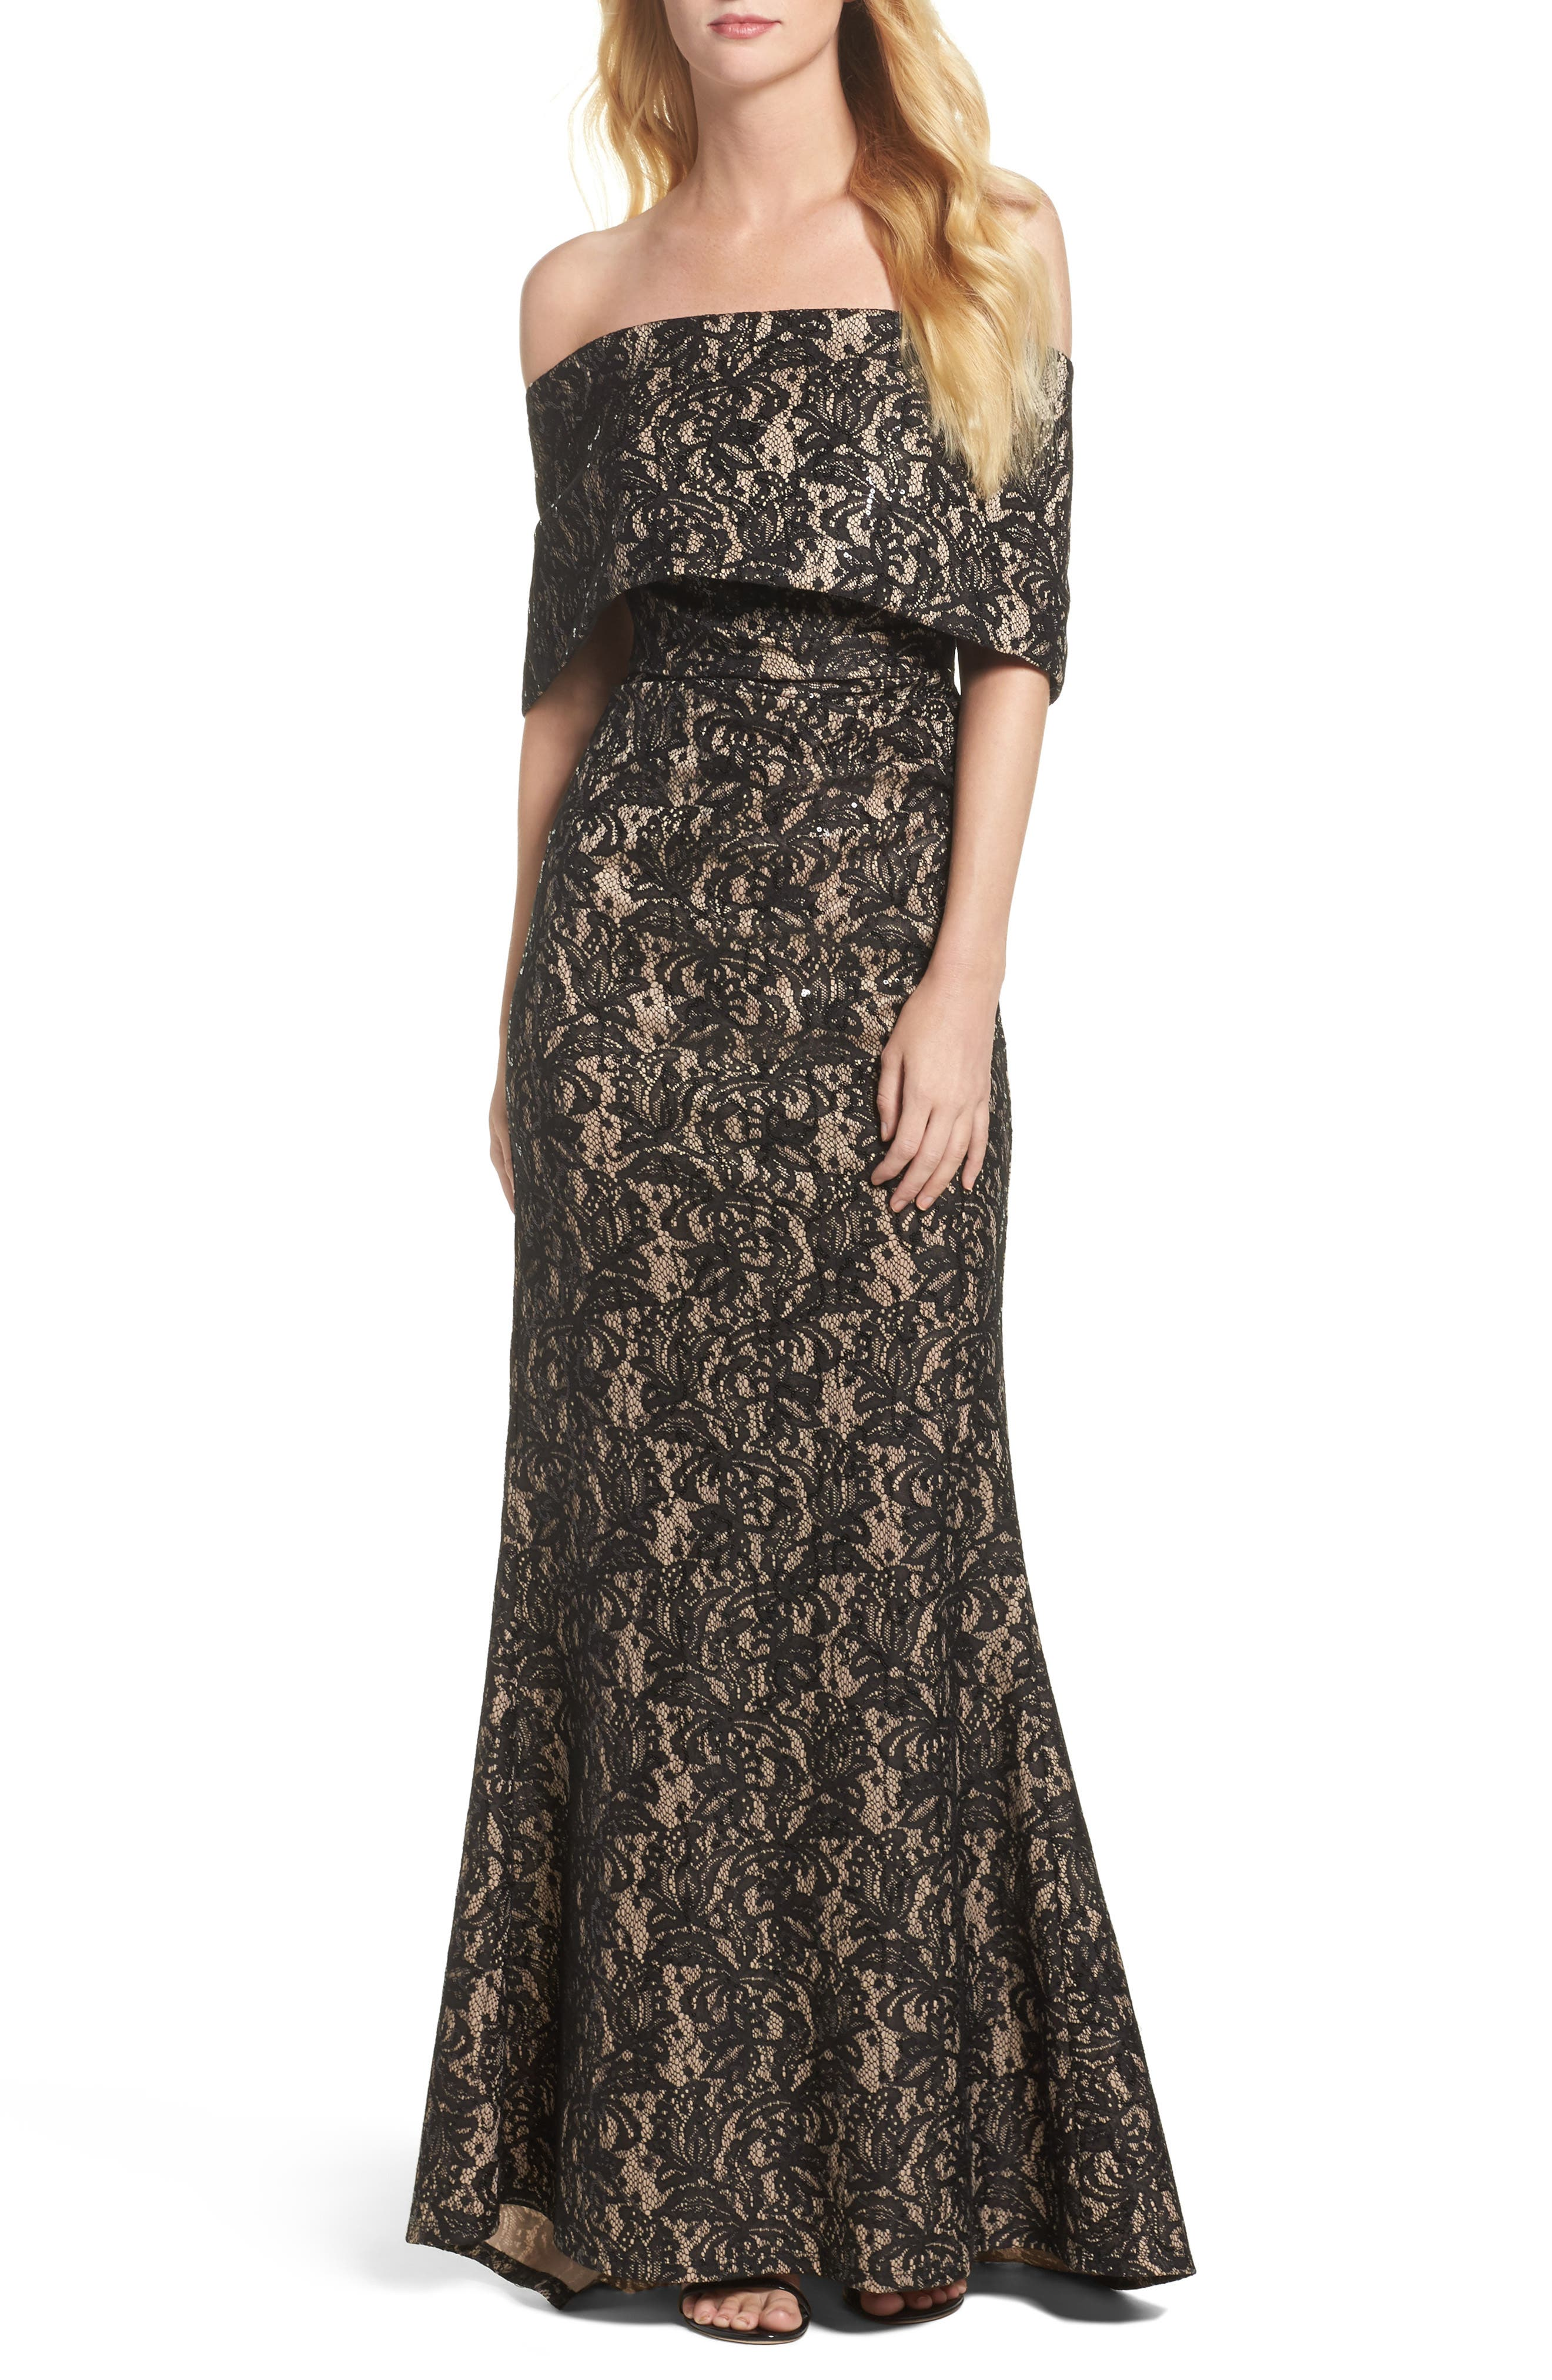 VINCE CAMUTO,                             Sequin Off the Shoulder Gown,                             Main thumbnail 1, color,                             BLACK/ TAN